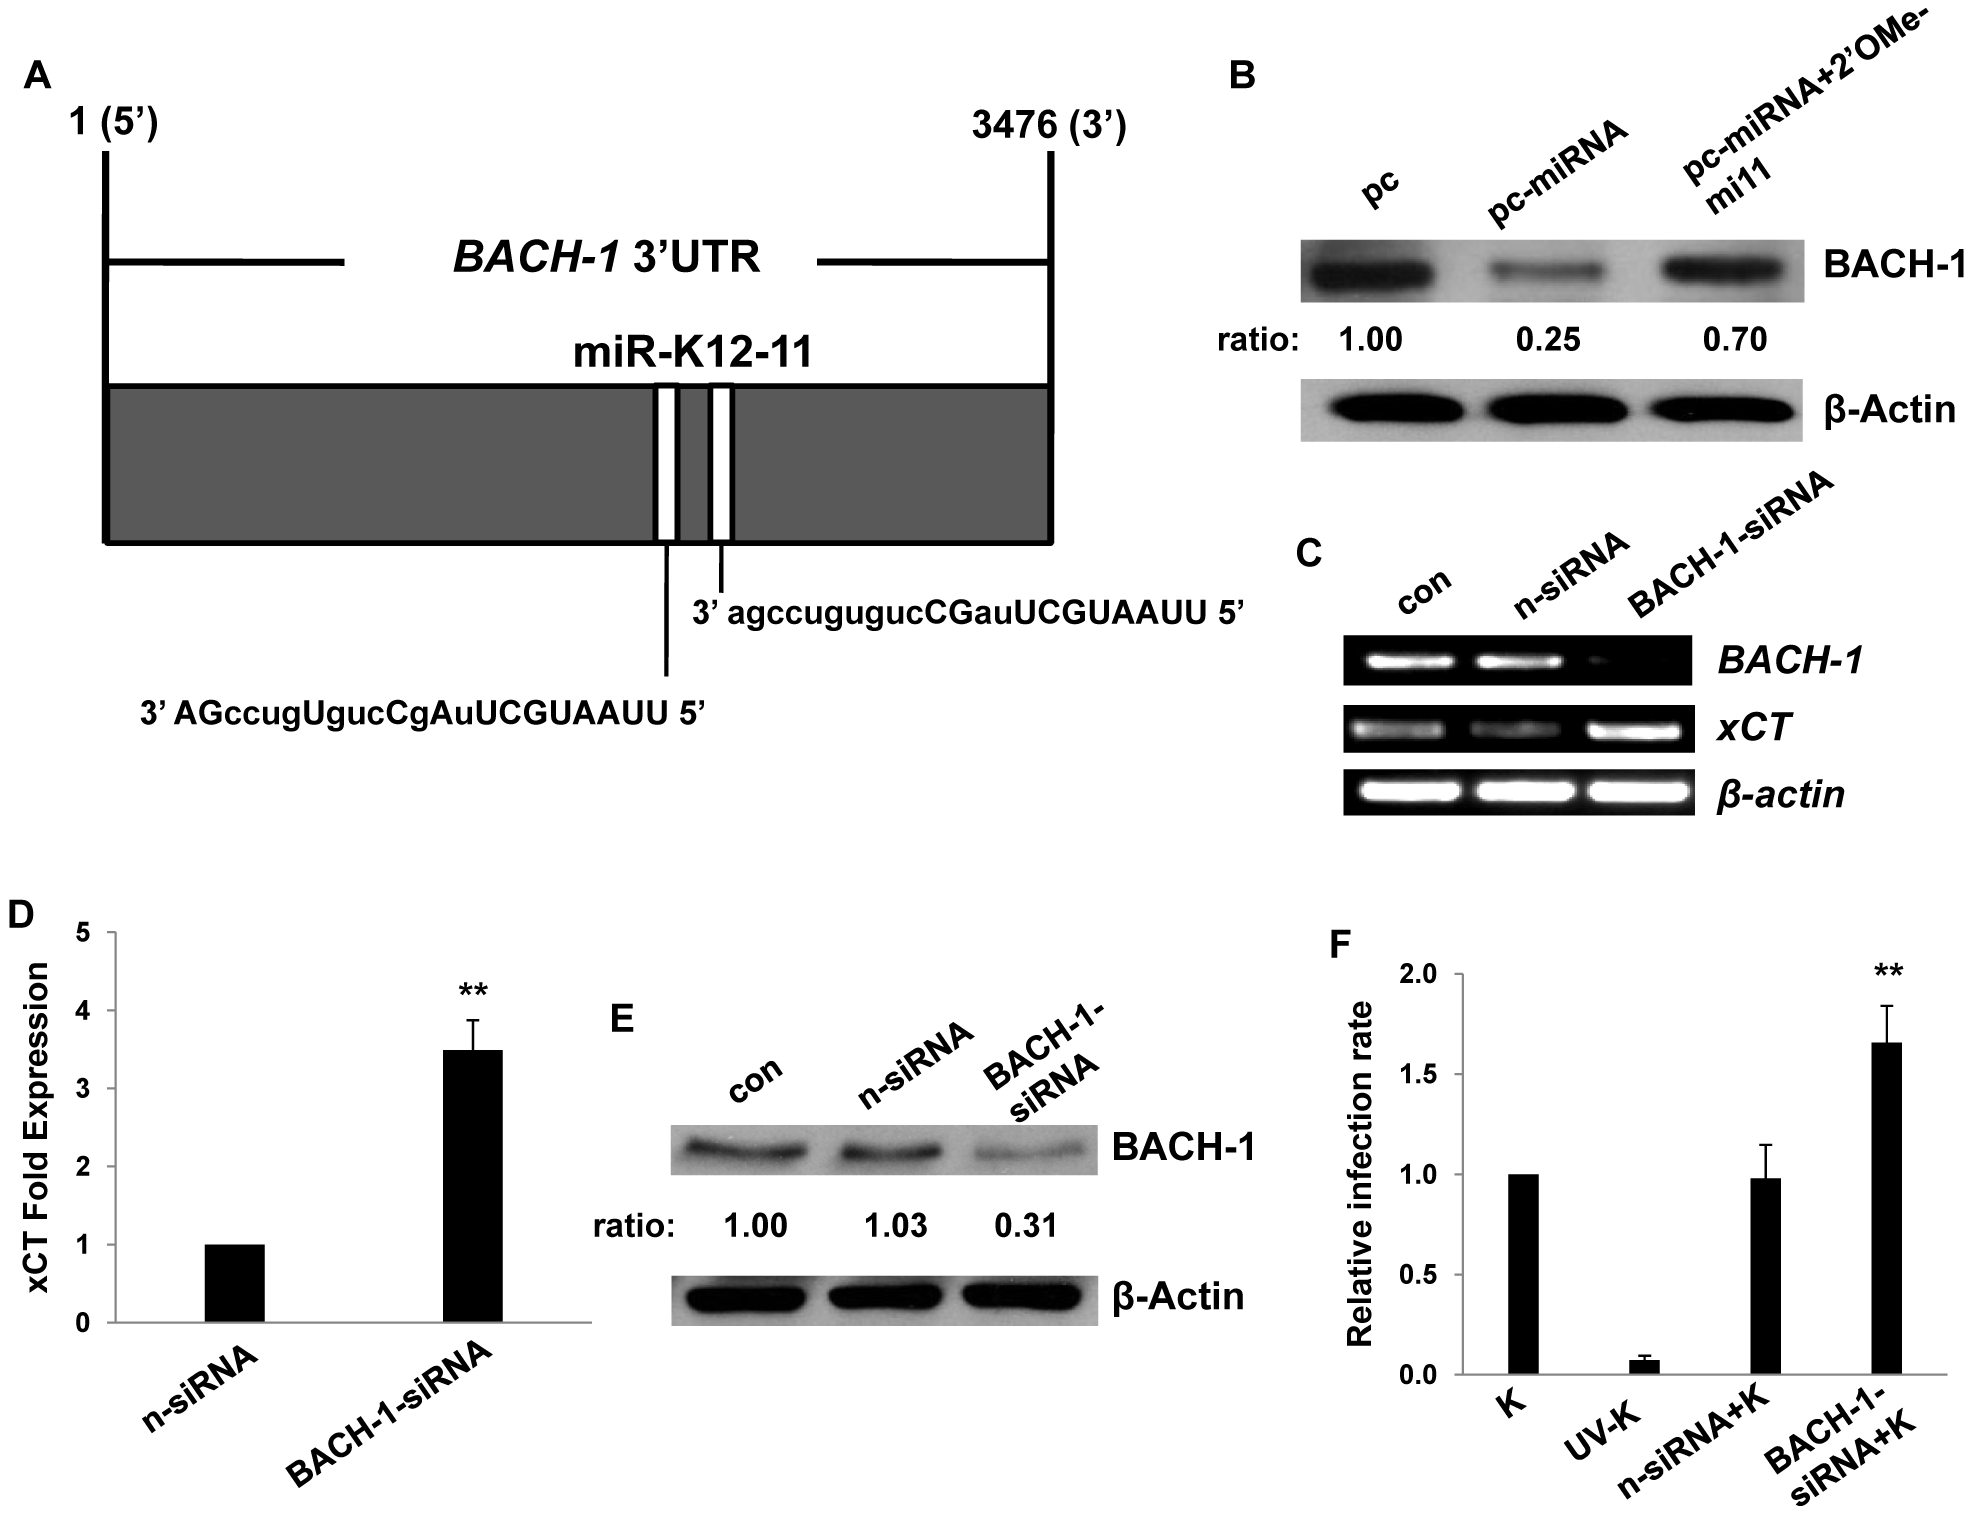 KSHV miRNAs upregulate xCT expression through repression of BACH-1.